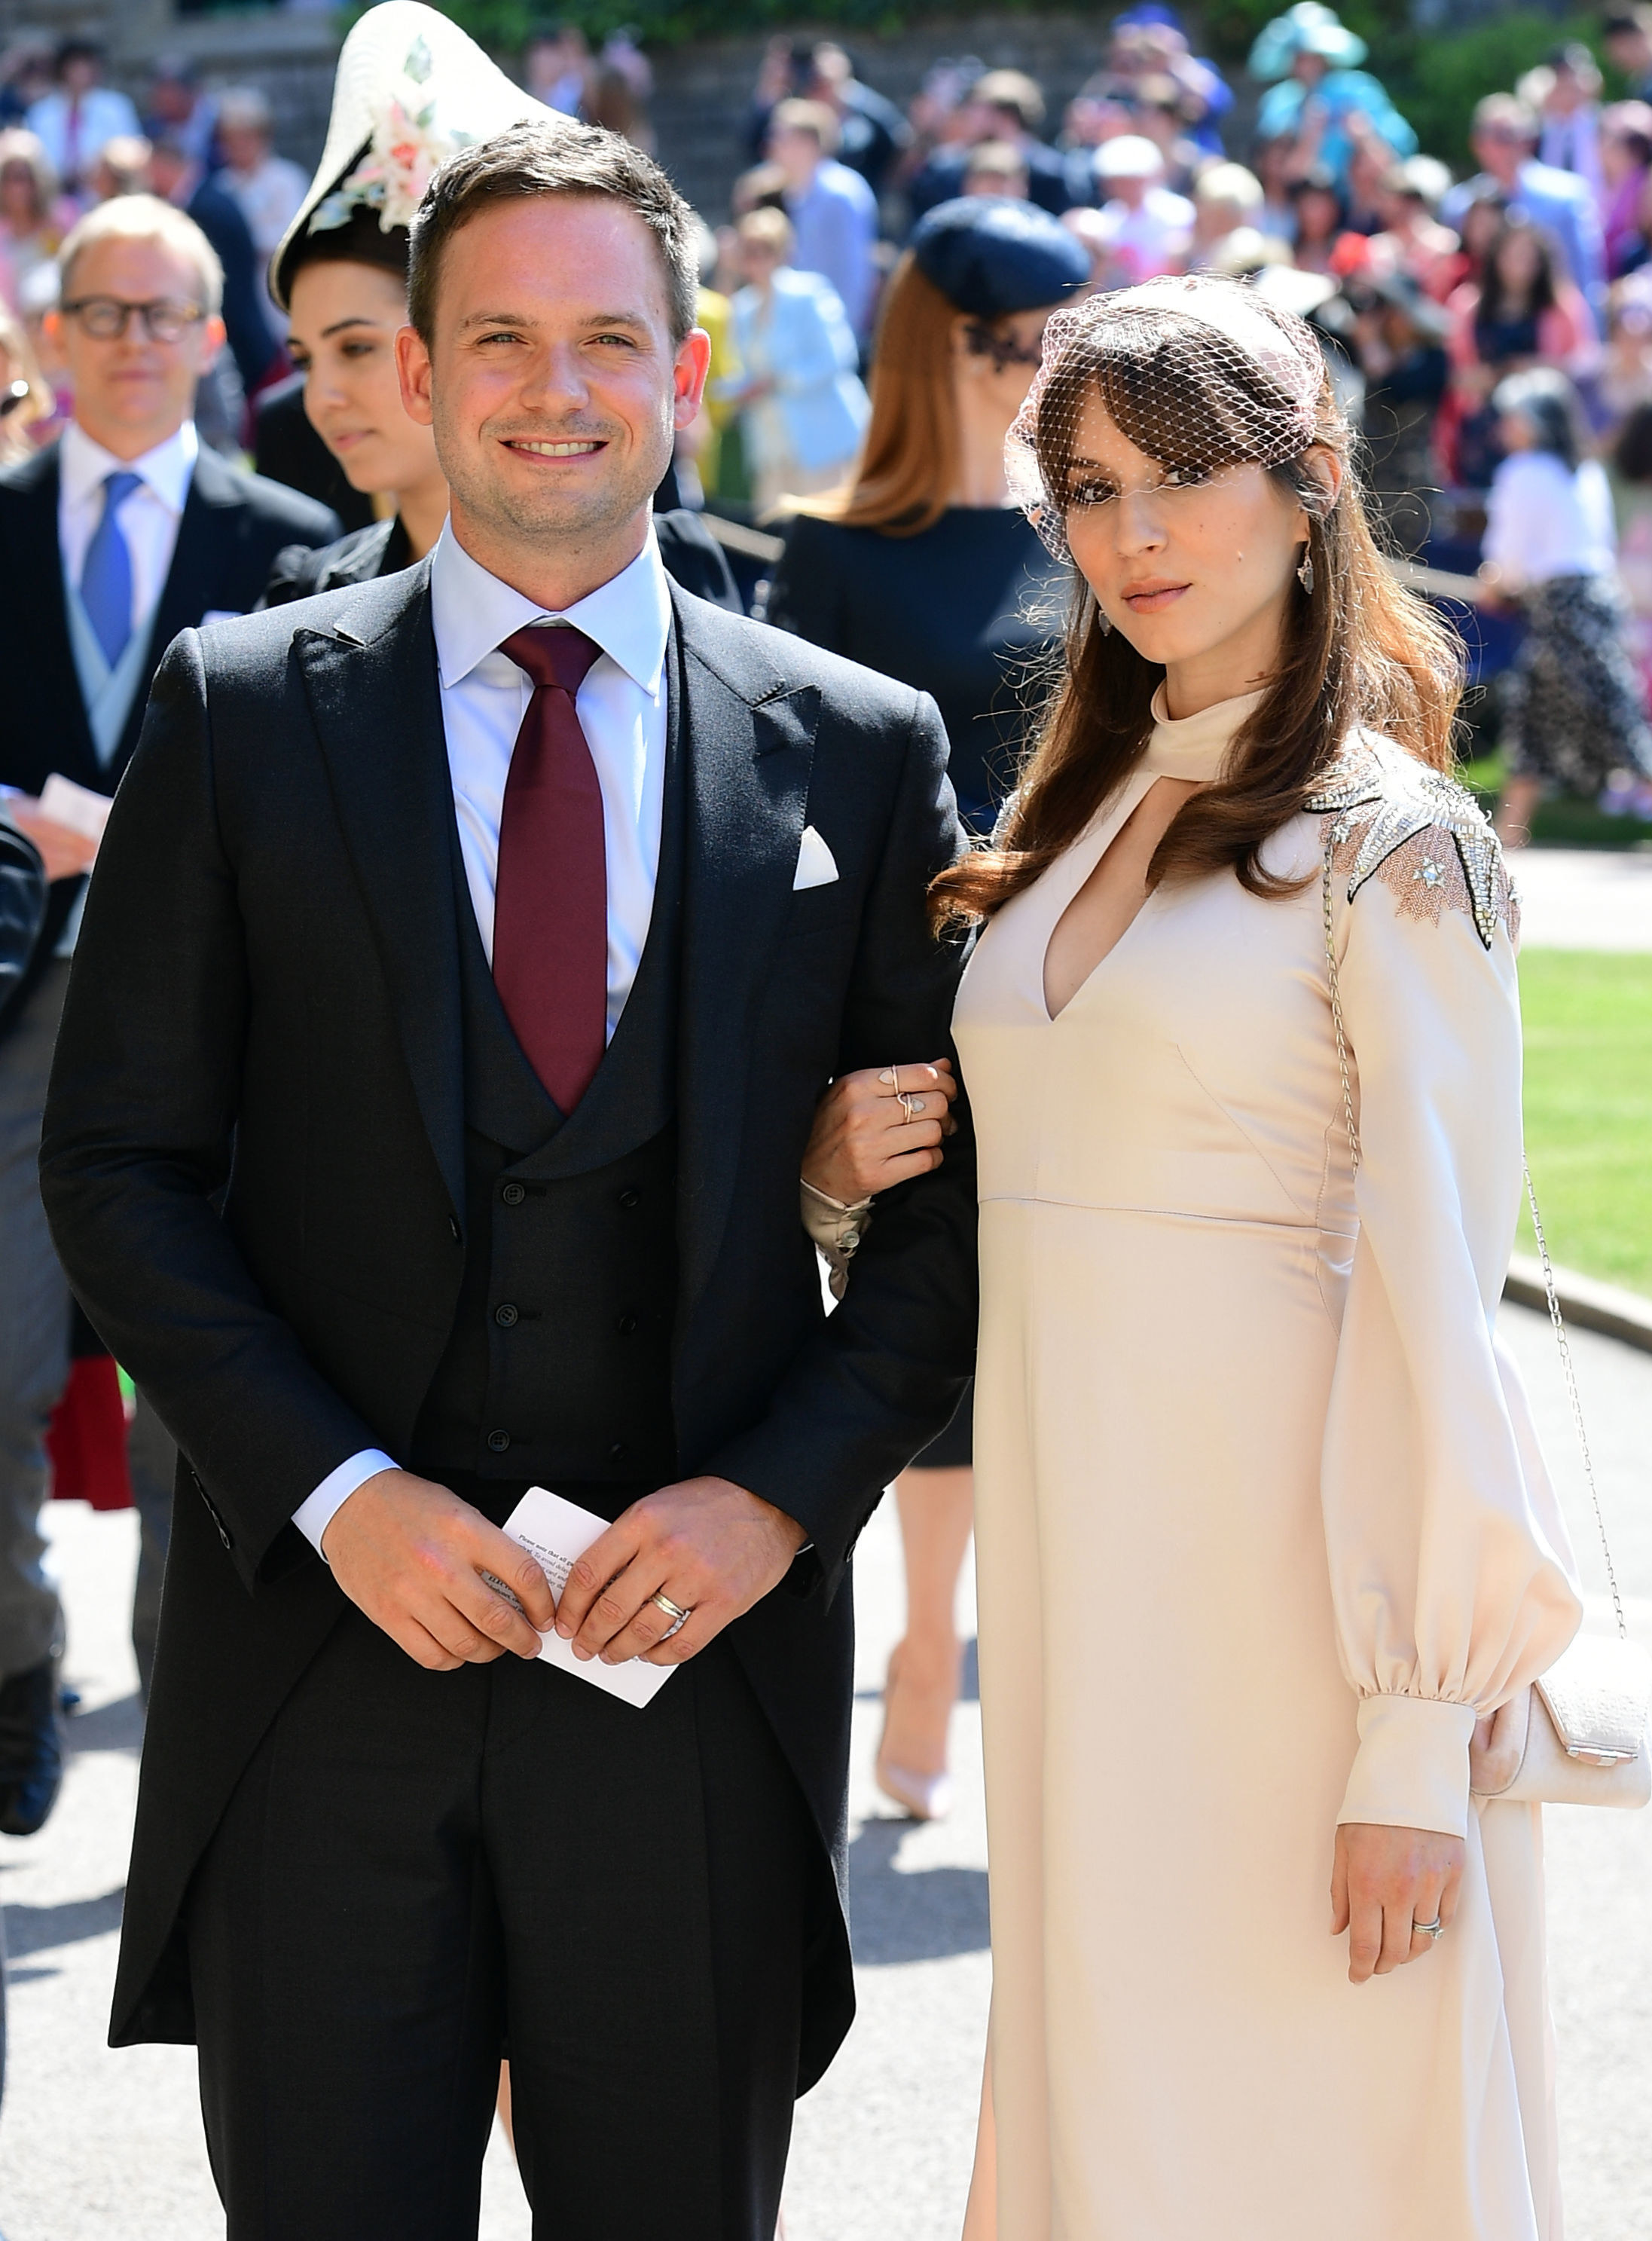 Patrick and Troian at the wedding of Prince Harry and Meghan Markle